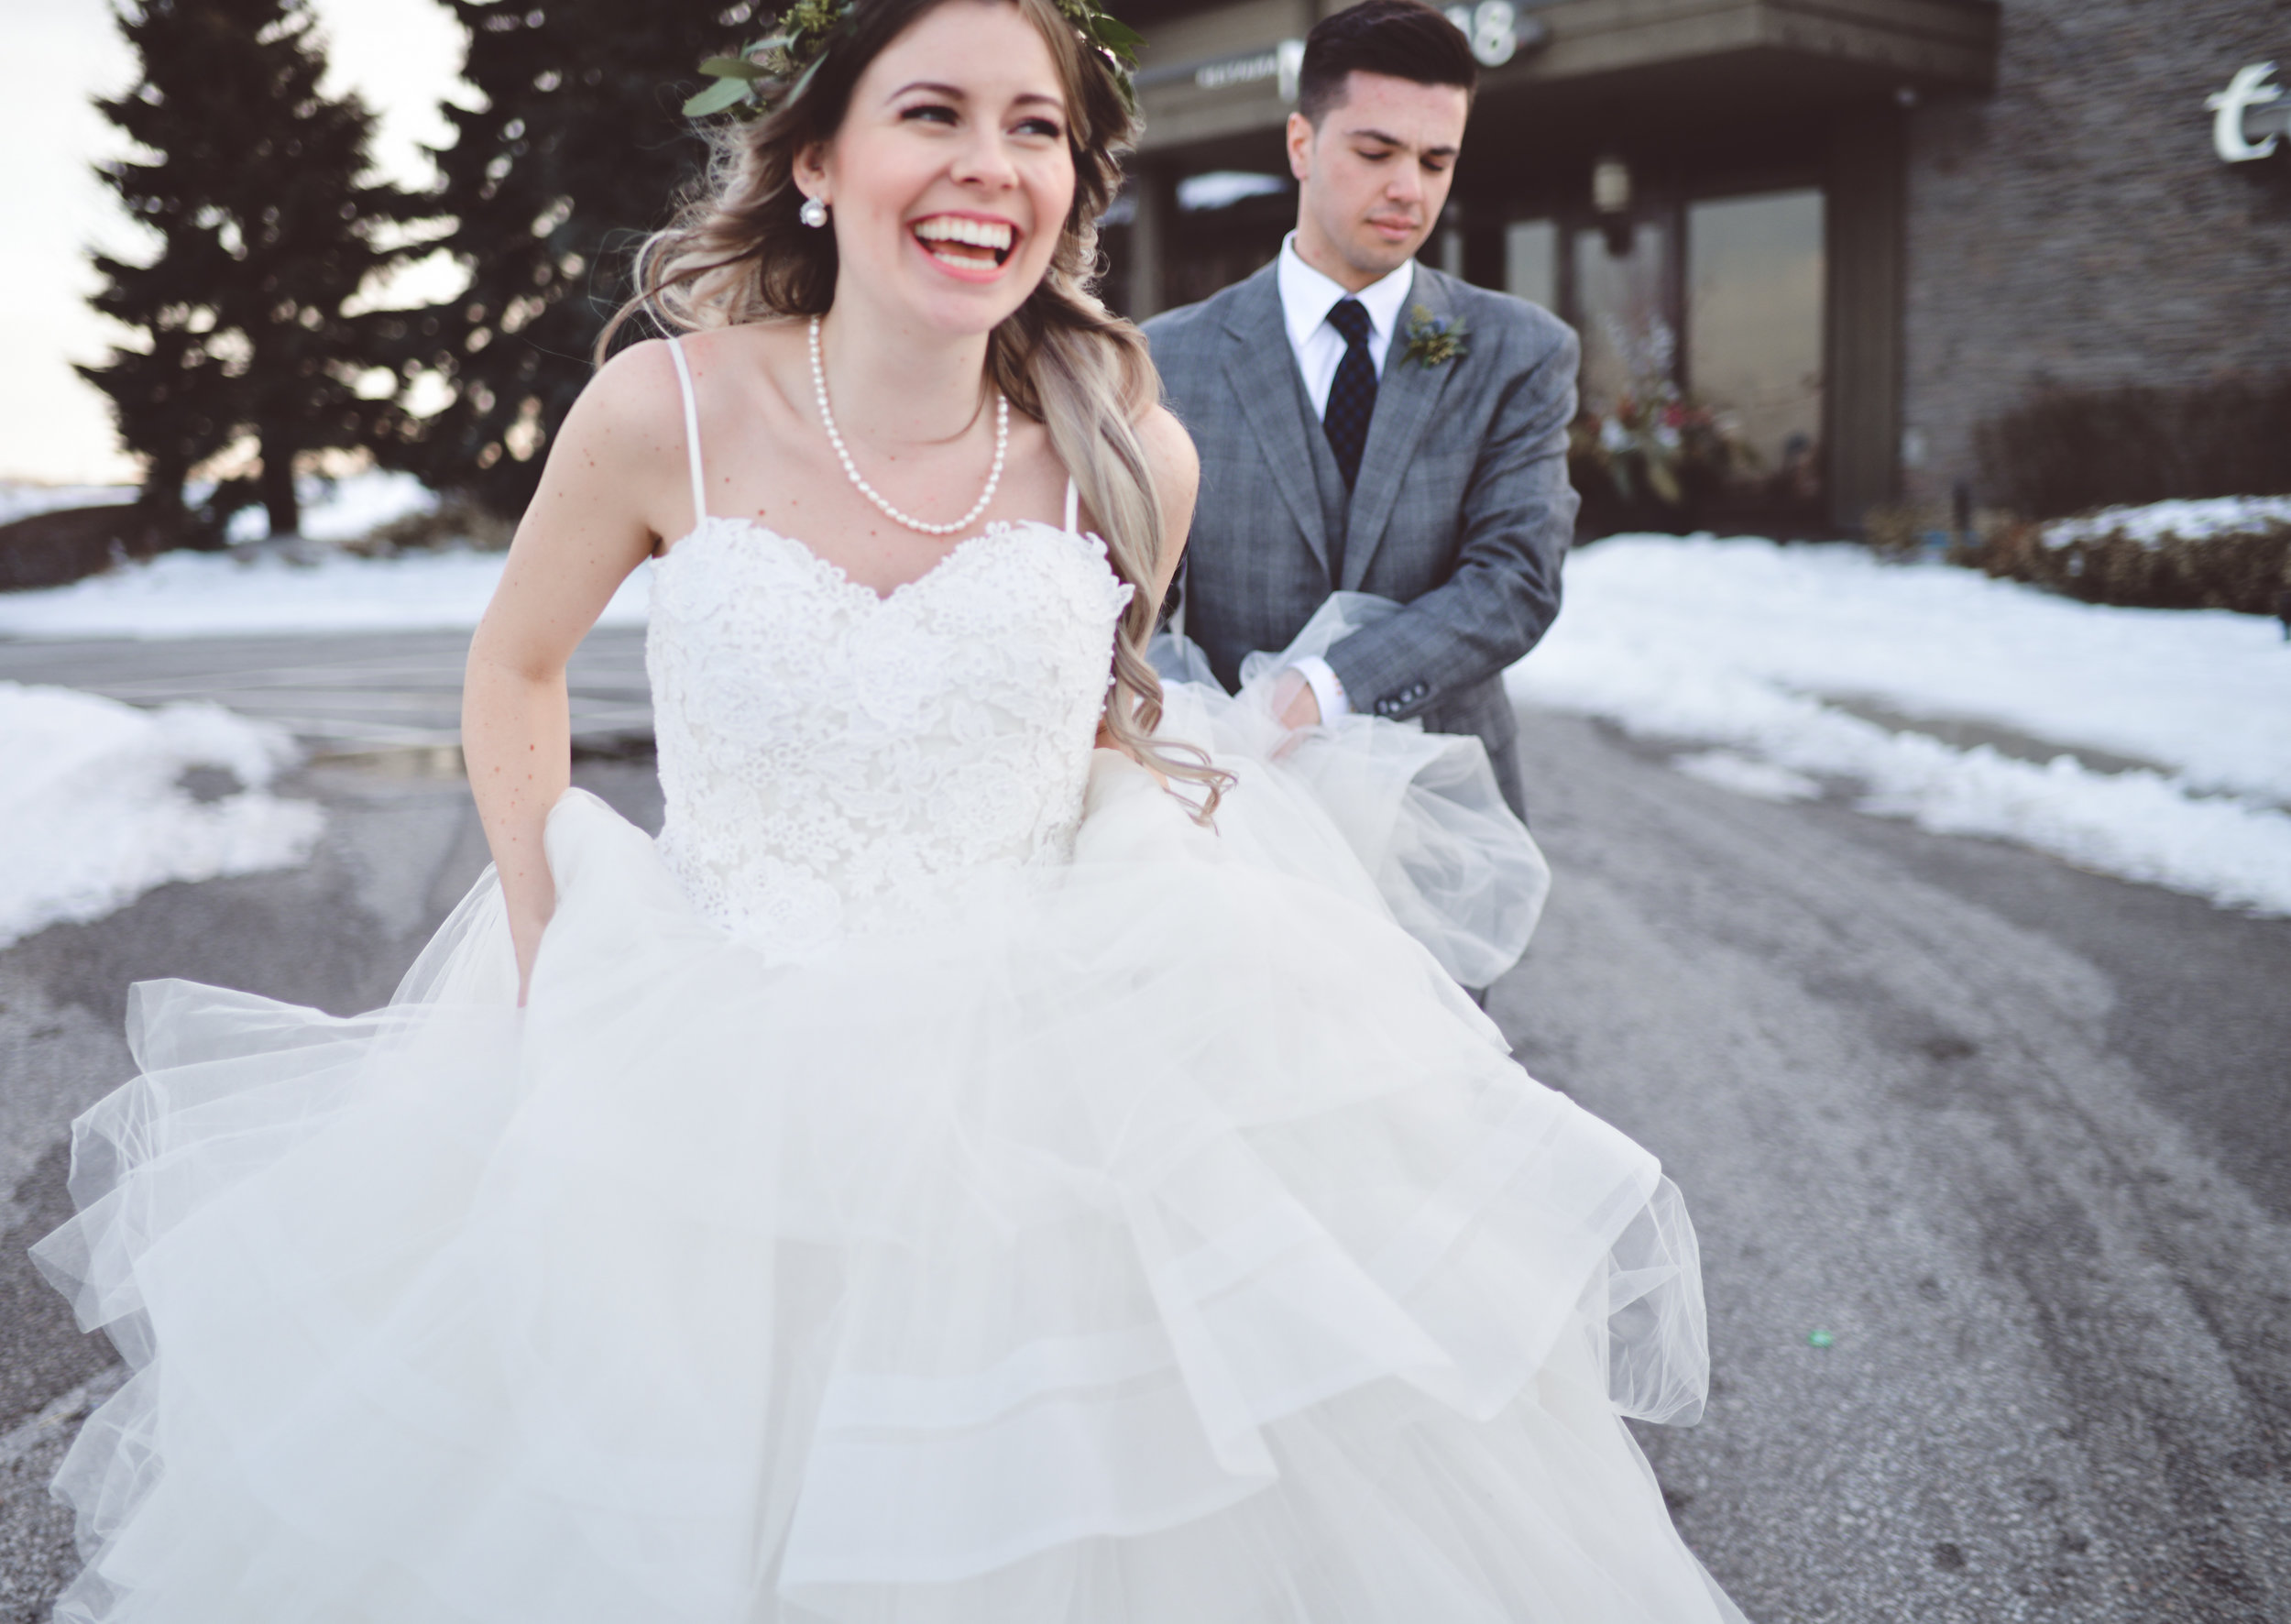 N + R - Bride + Groom-3534.jpg